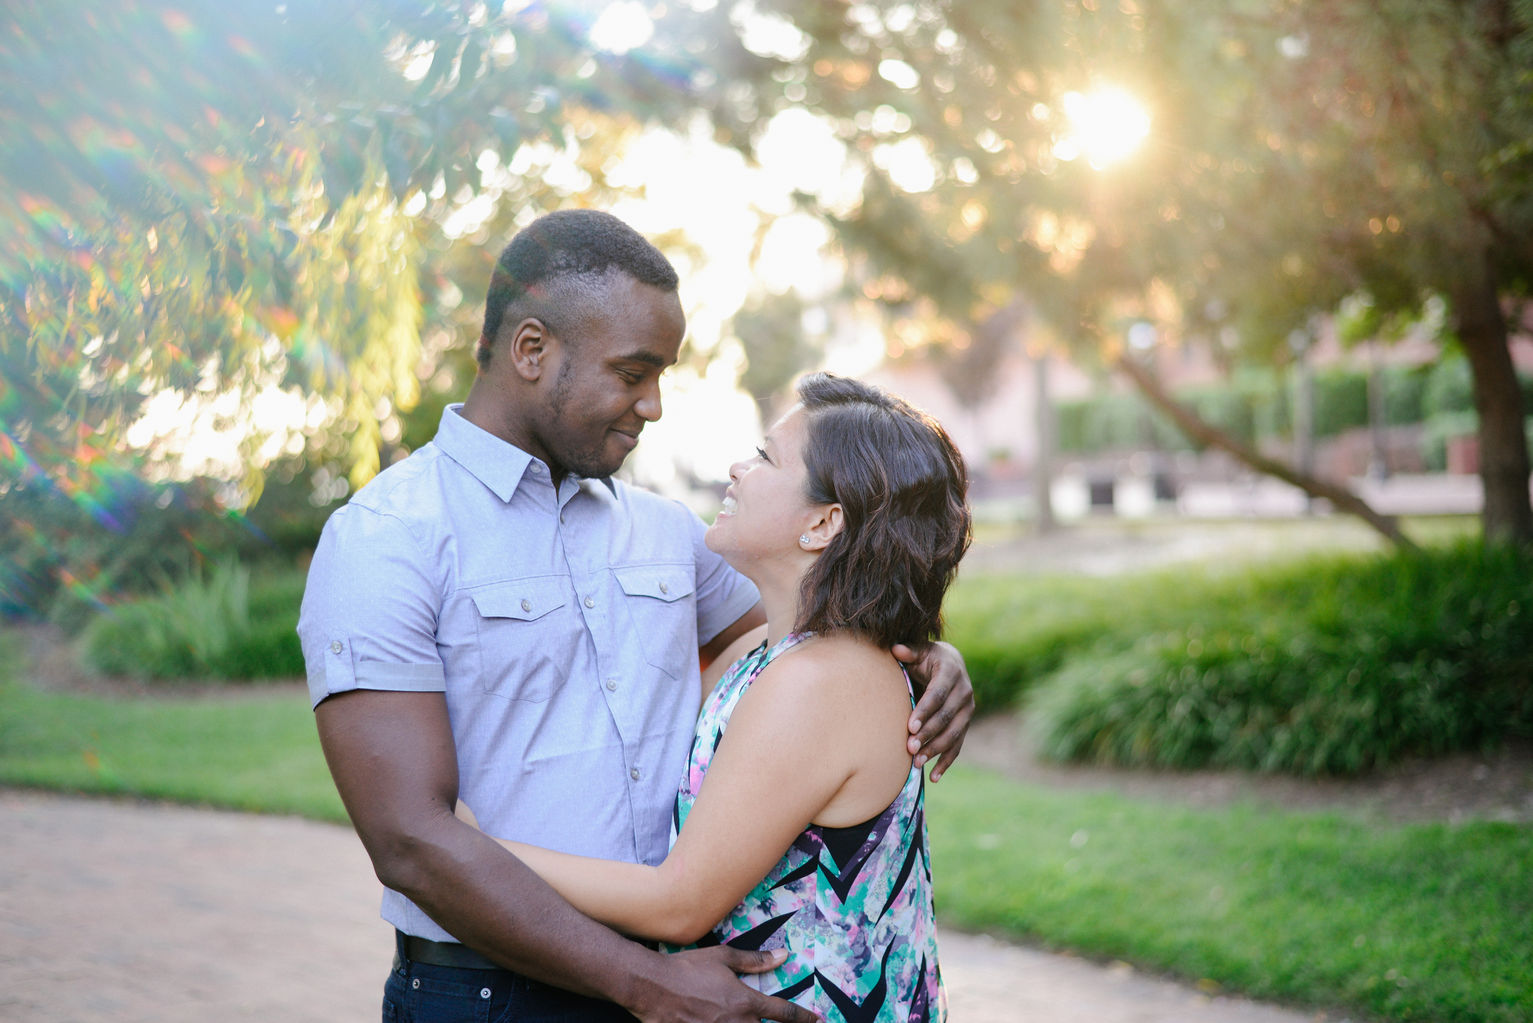 Engagement Session at The Pagoda Gardens in Norfolk Virginia Wedding and Portrait Photographer in Virginia Prism Photography